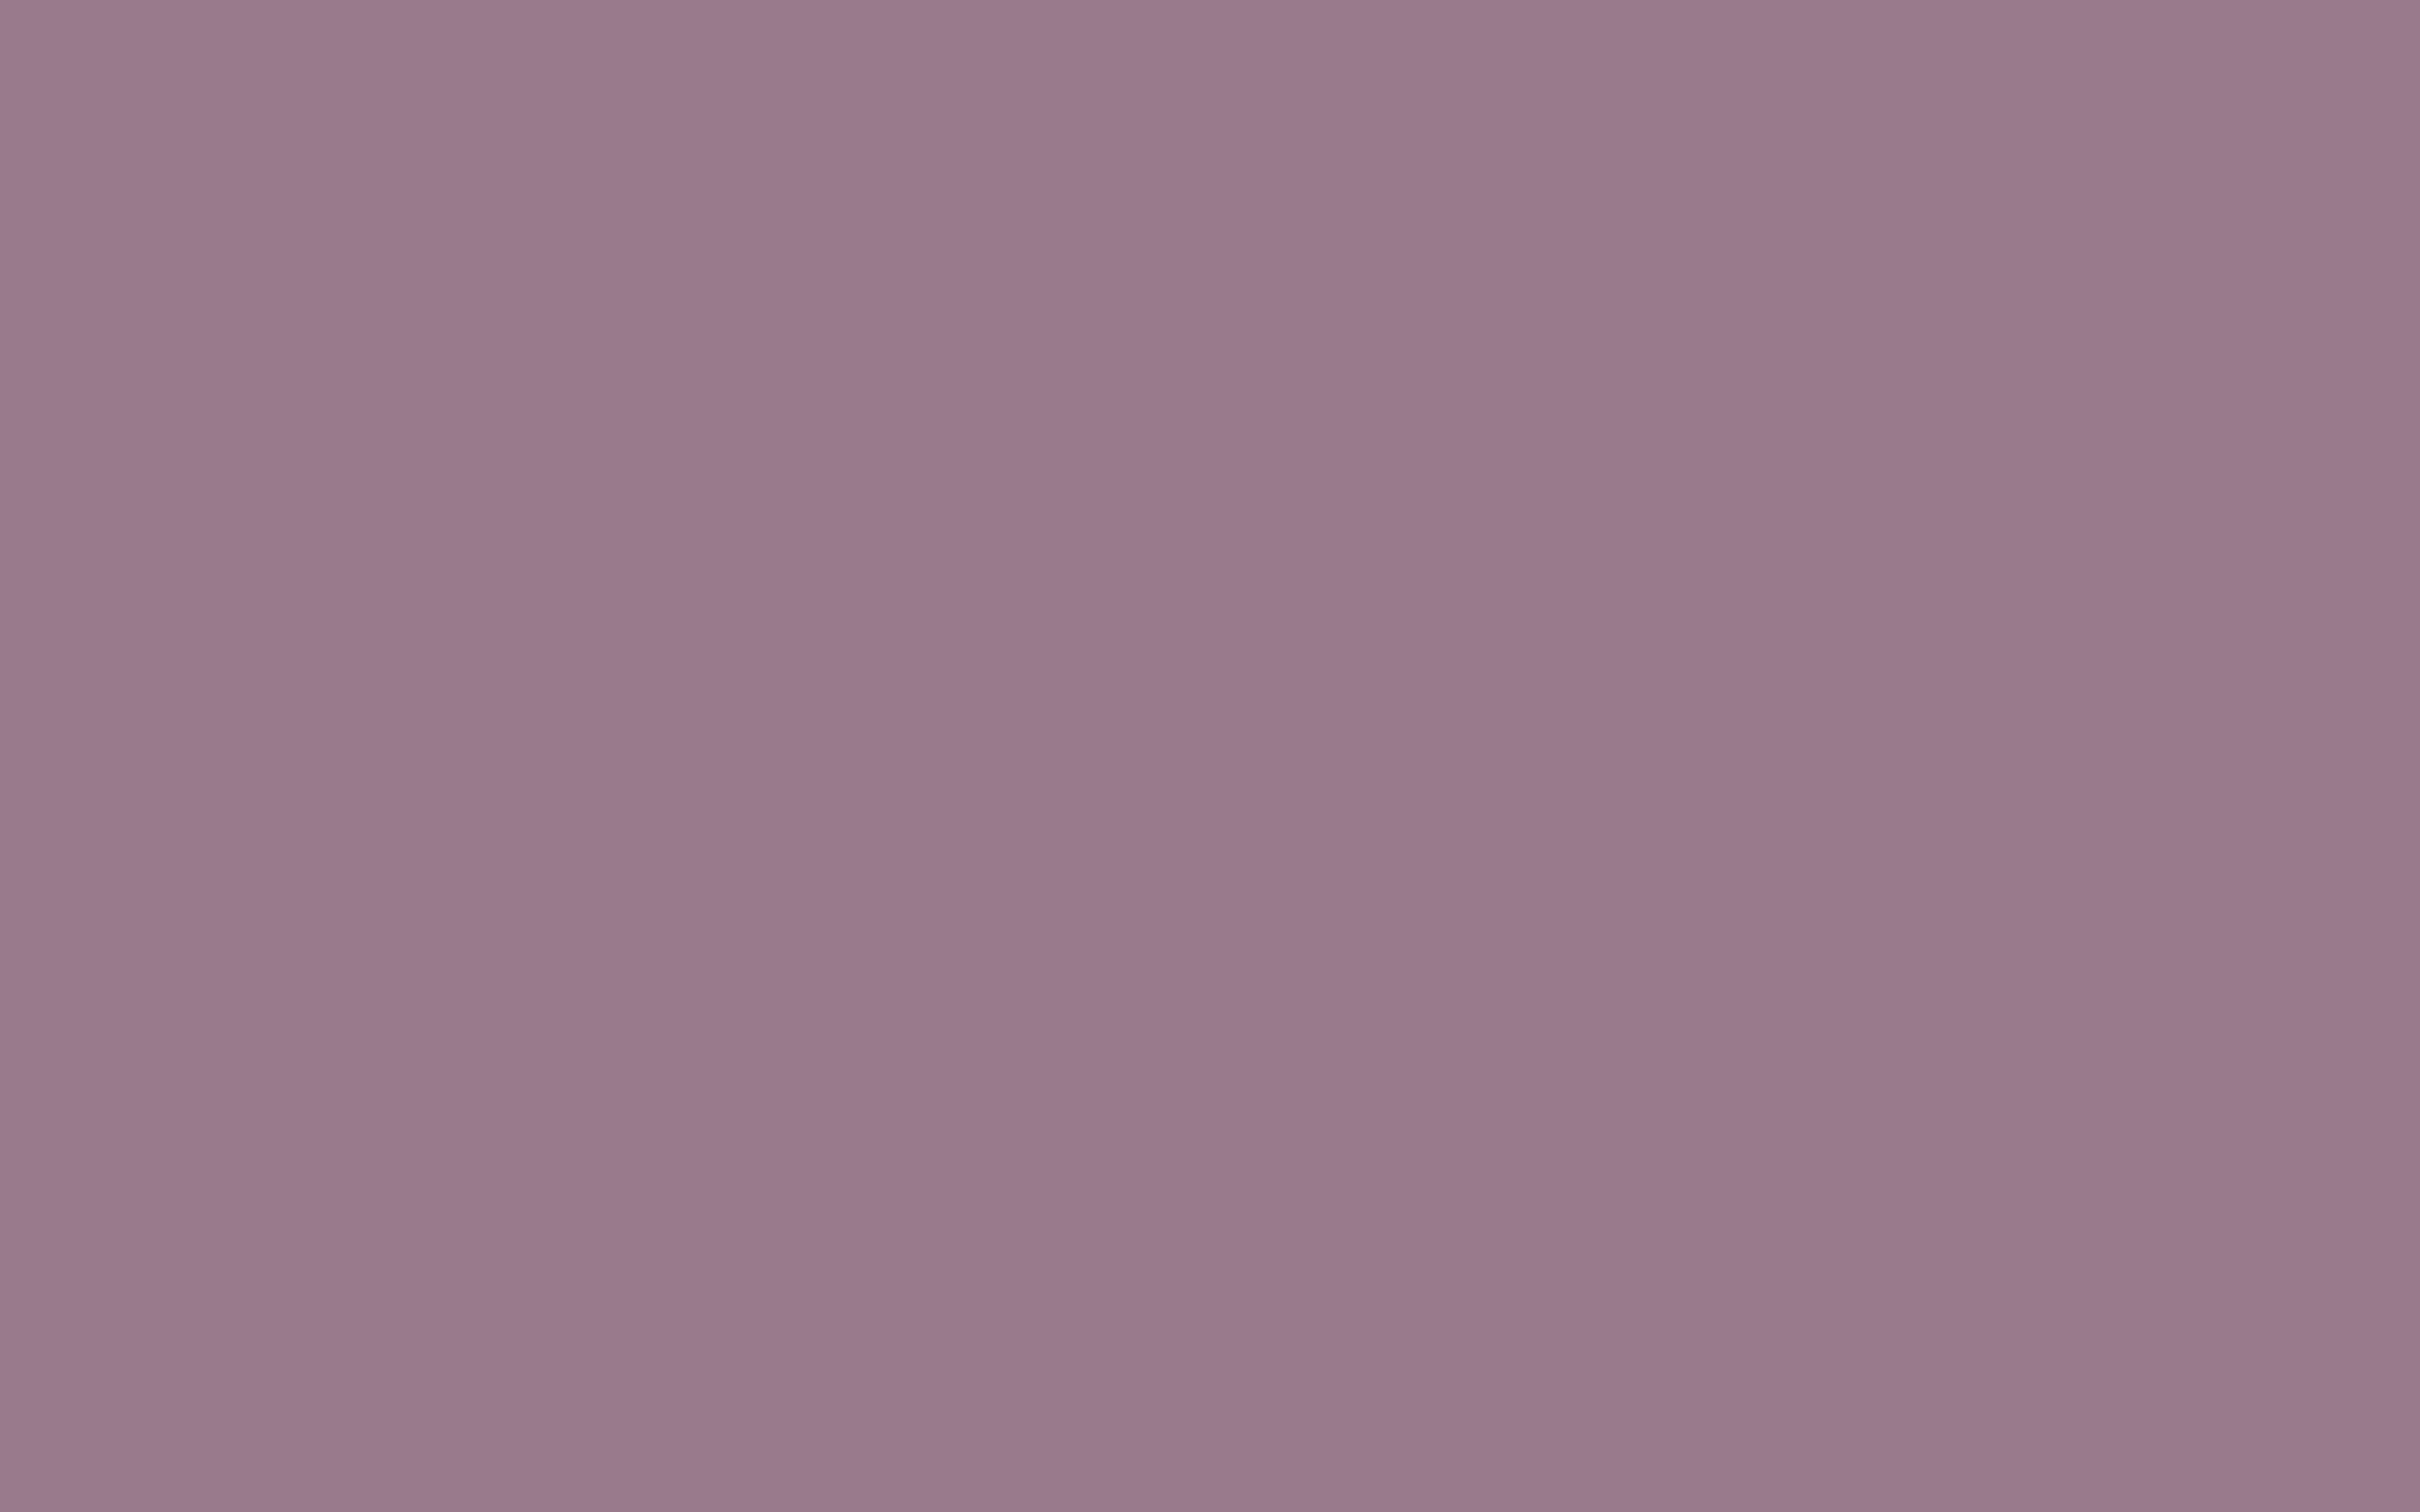 2560x1600 Mountbatten Pink Solid Color Background